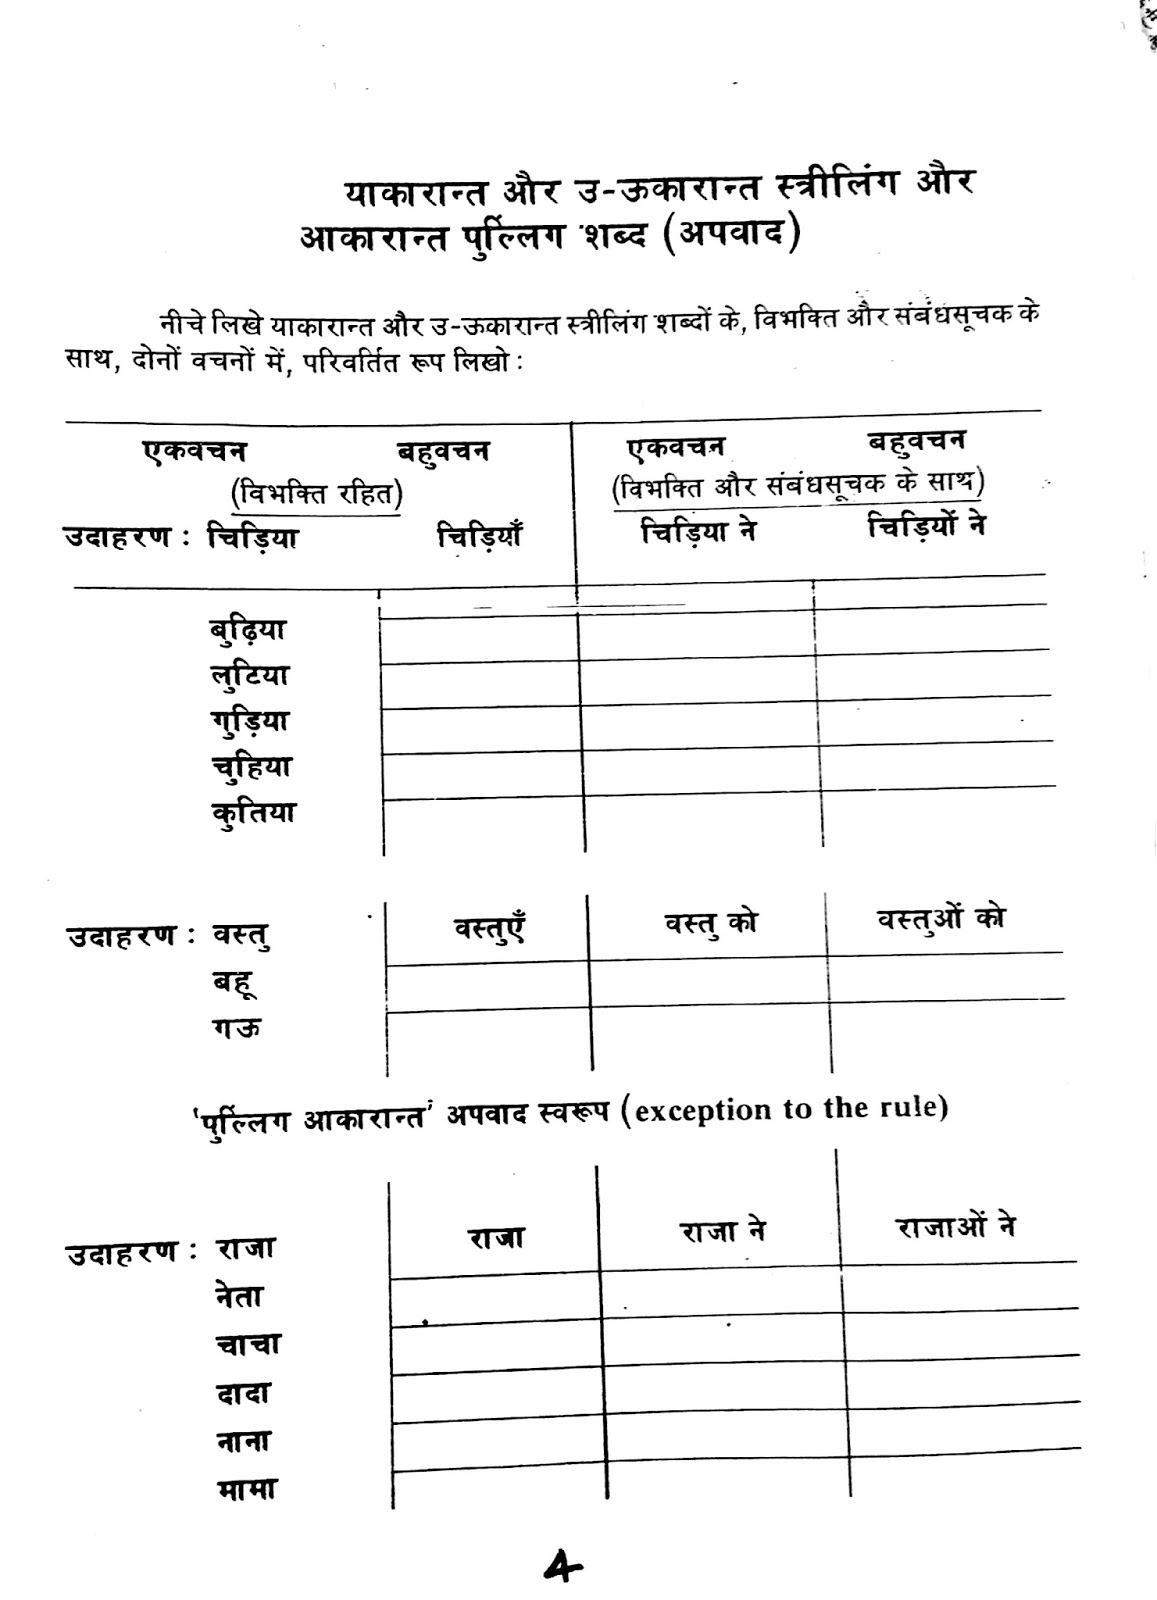 worksheet Hindi Grammar Worksheets For Class 6 workbooks hindi grammar worksheets for class 10 cbse free 100 samas in with answers ncert solutions class